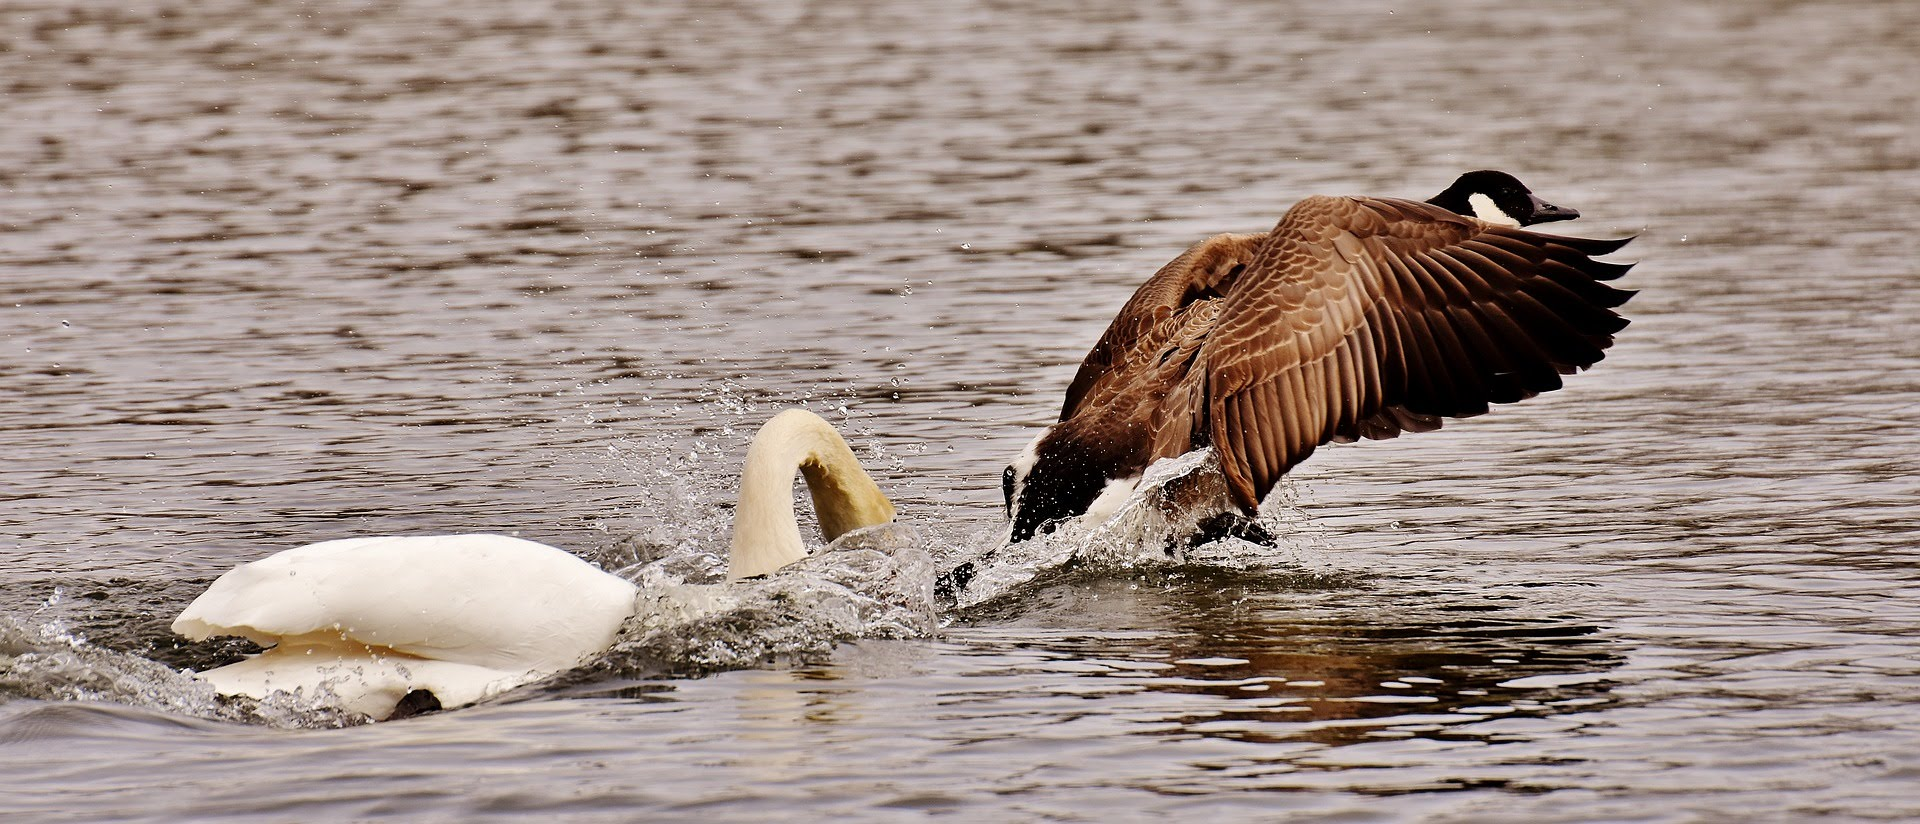 swan attacking a goose